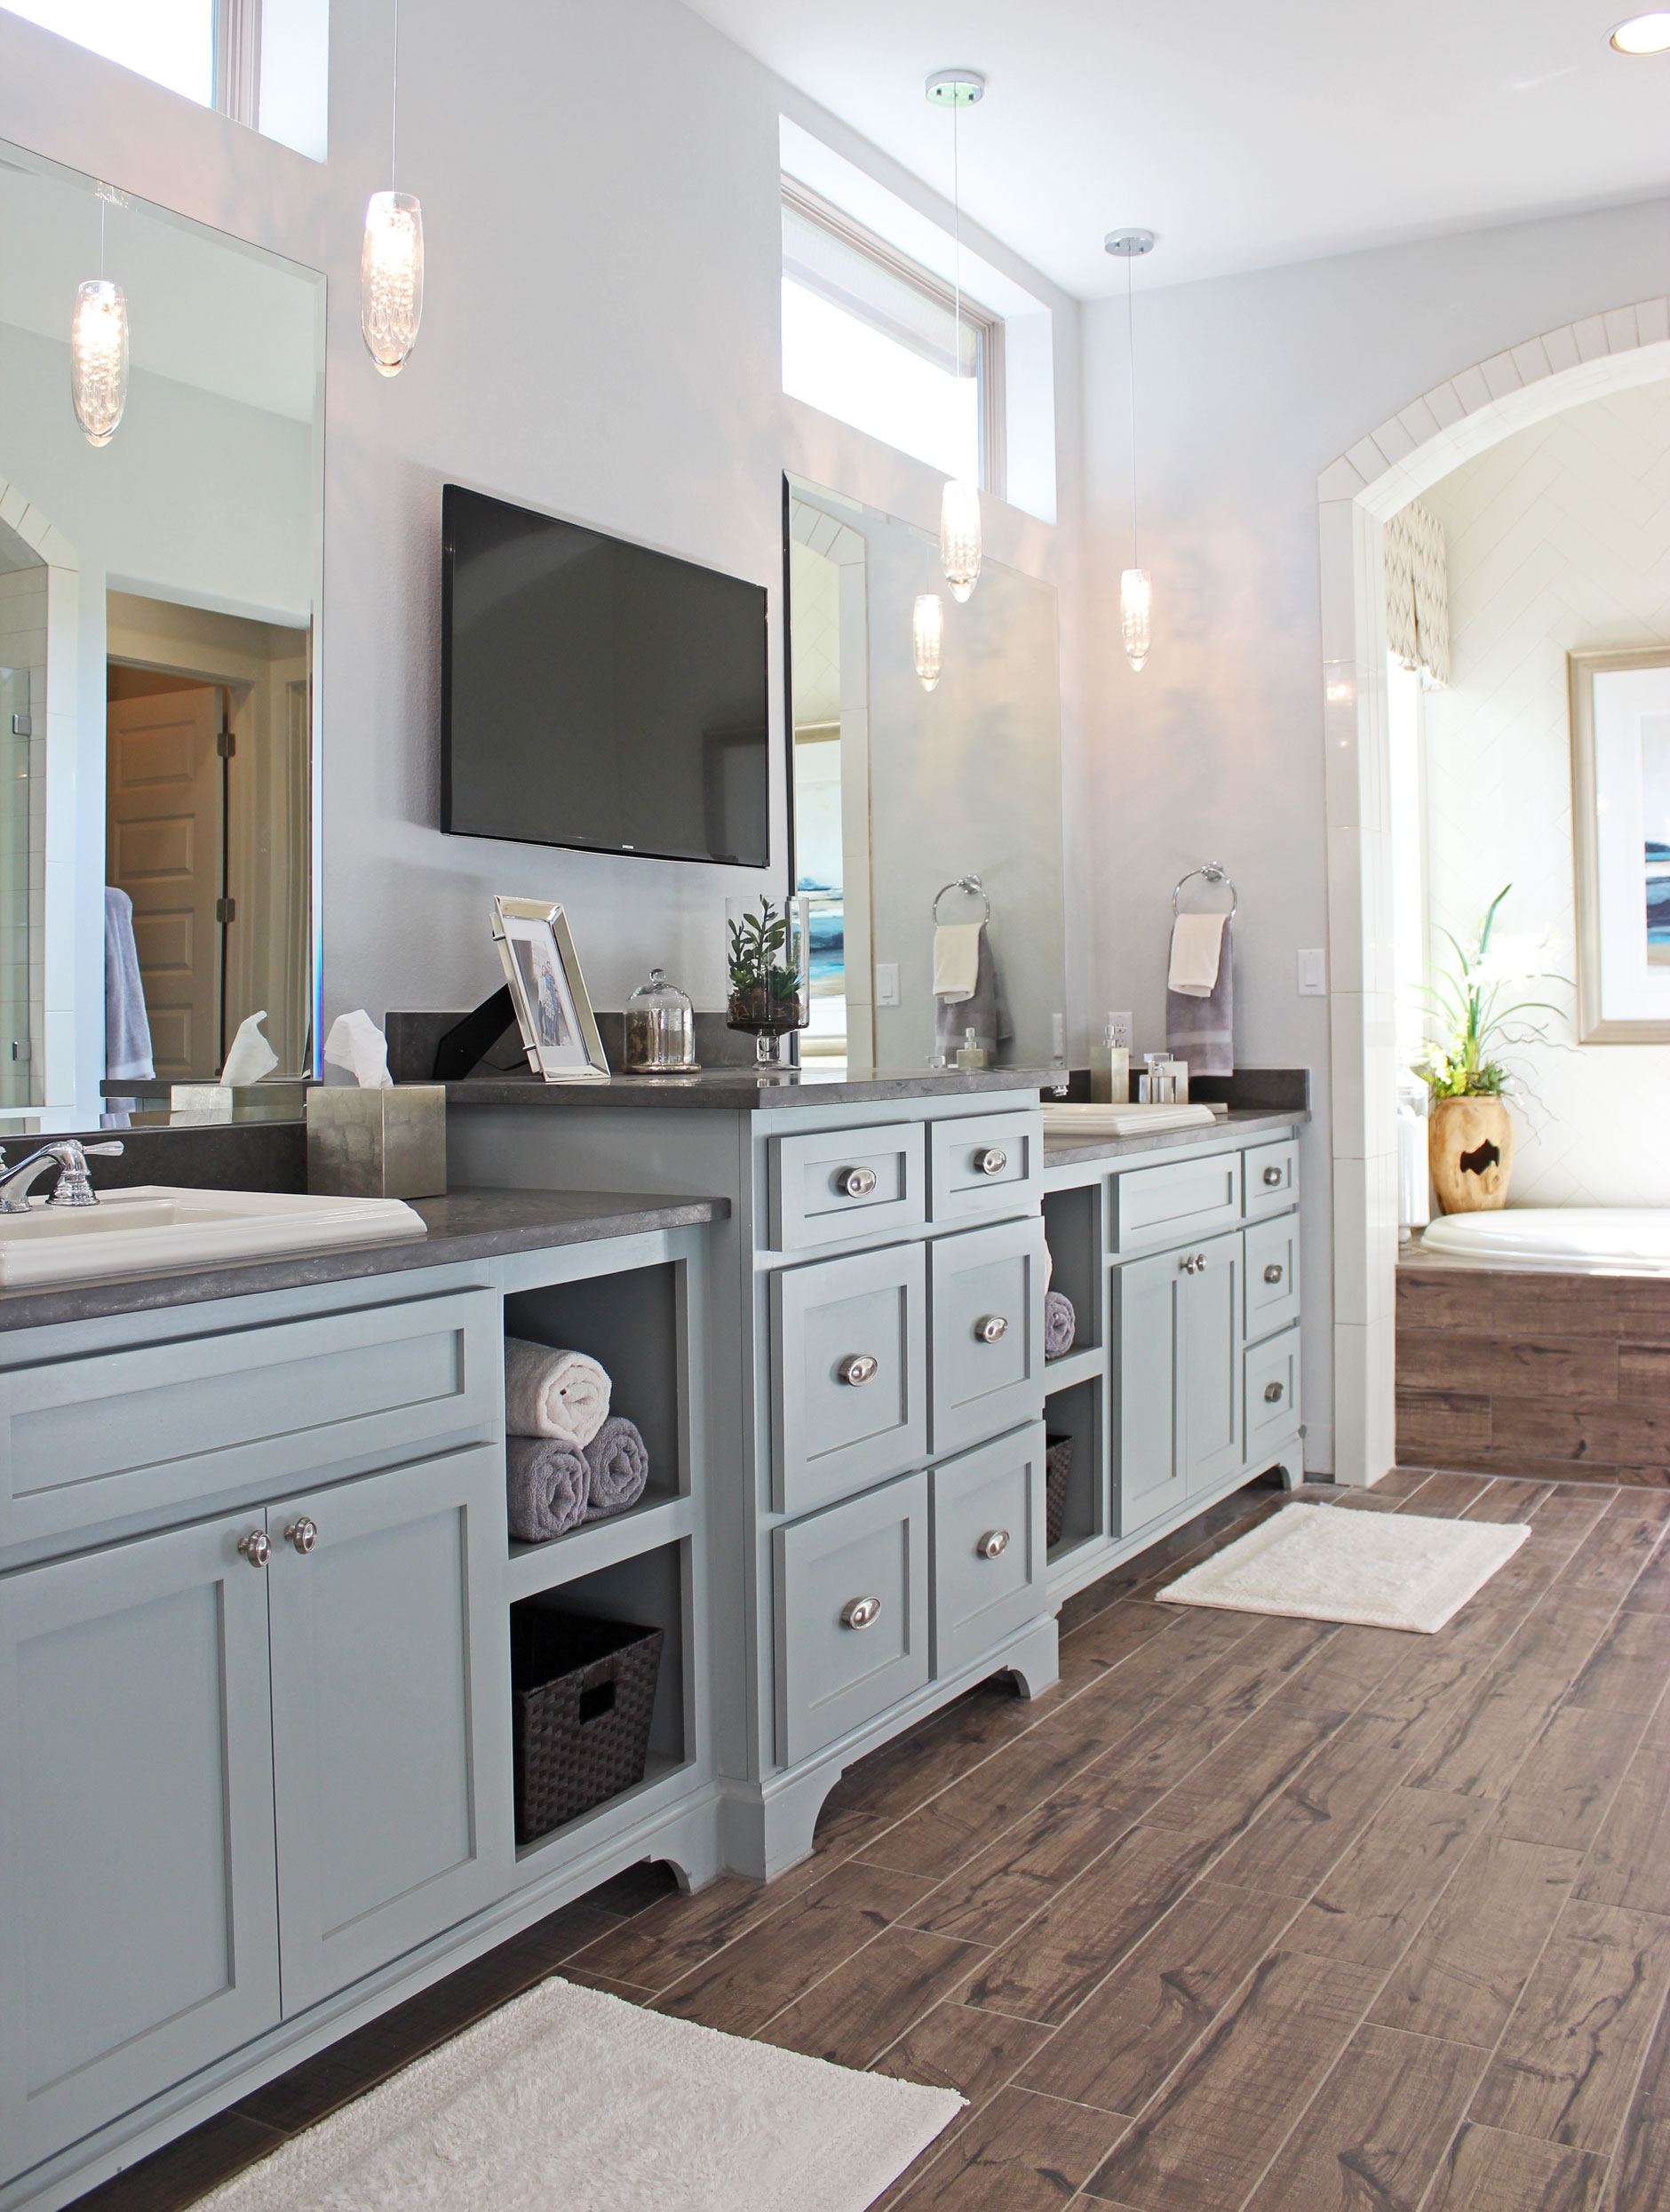 Bathroom burrows cabinets central texas builder direct for Grey blue white kitchen